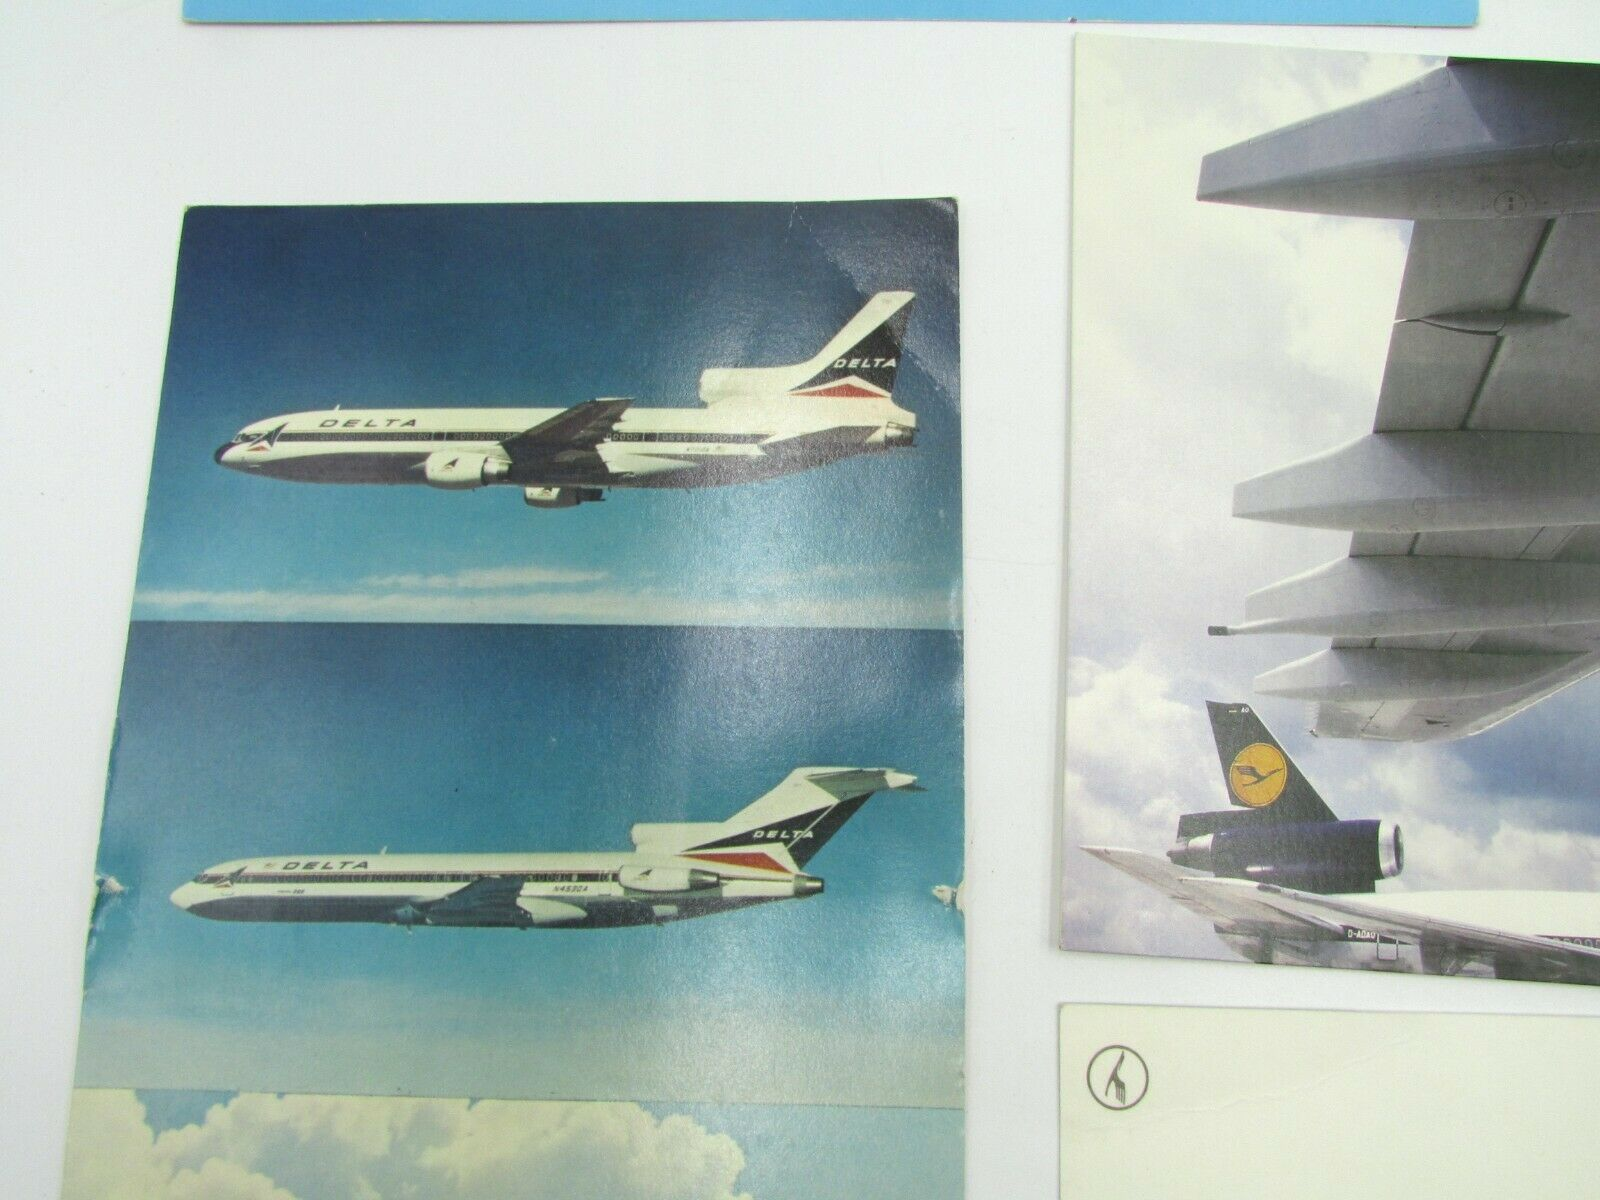 Vintage Airlines 7 Postcards Lot KLM Lufthansa EL-AL Delta Aircrafts Без бренда - фотография #2